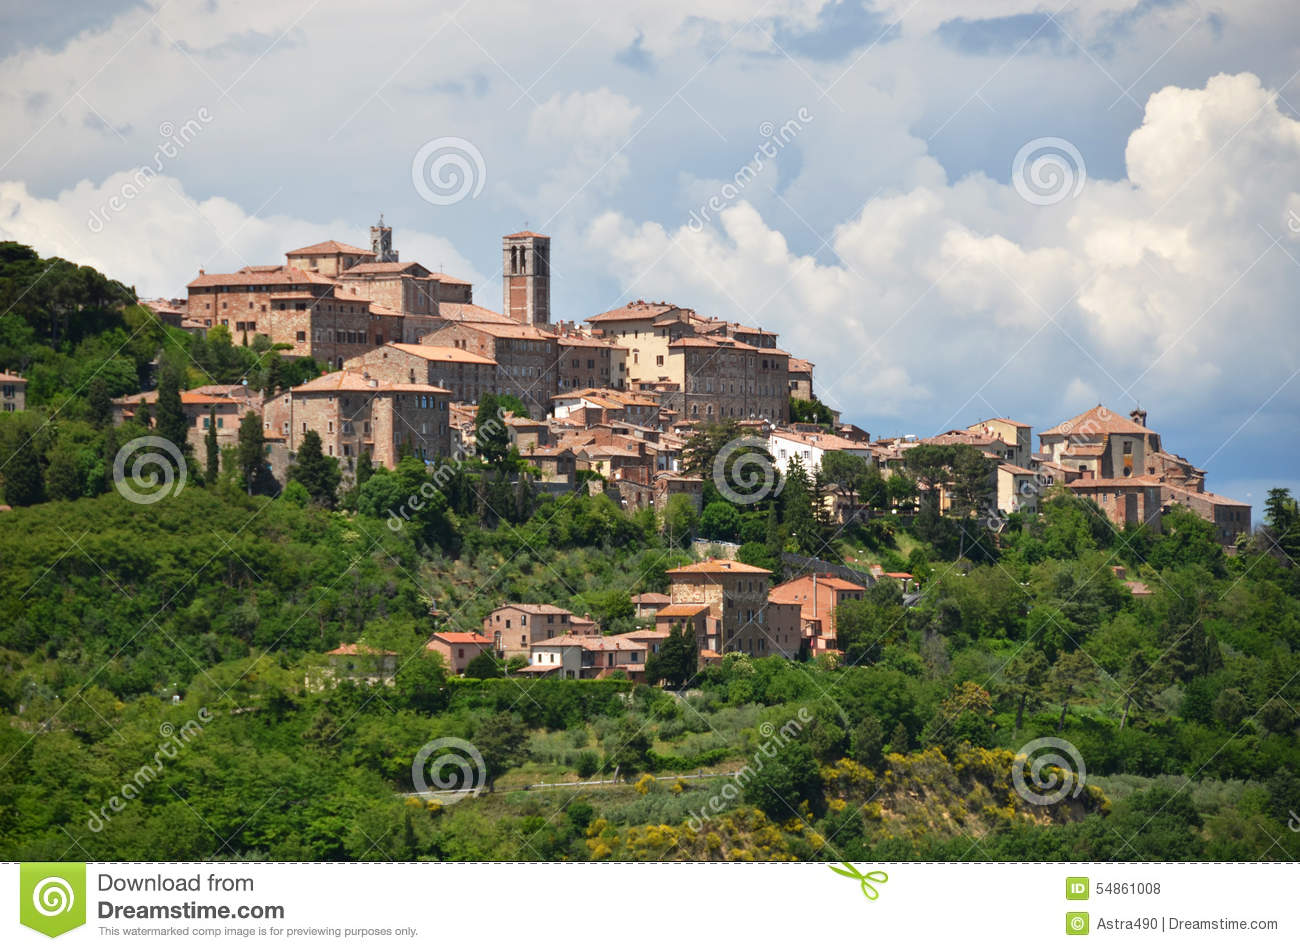 Montepulciano town, Italy